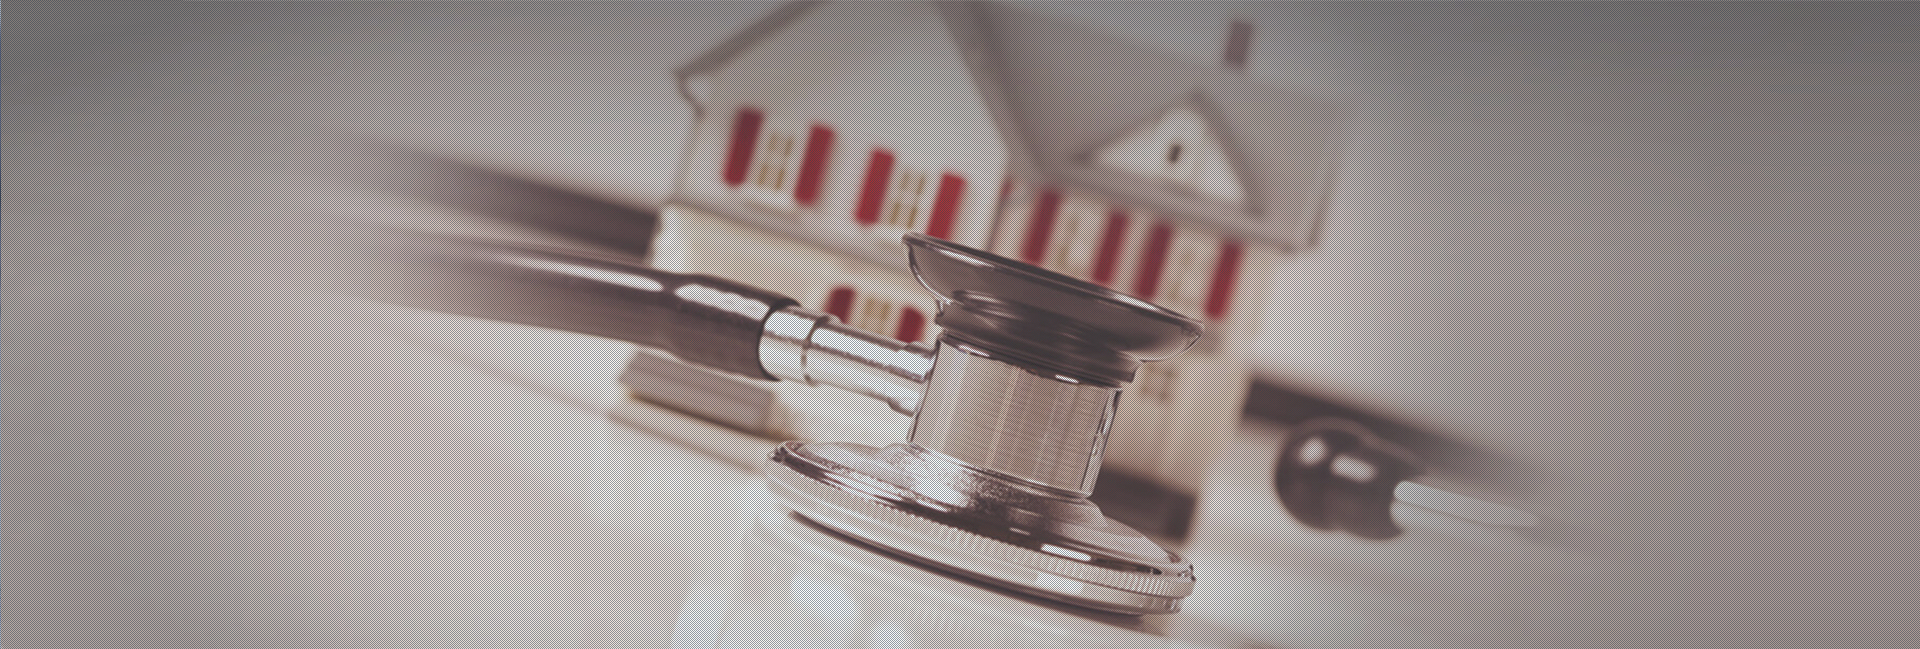 Diagnostic immobilier Privas